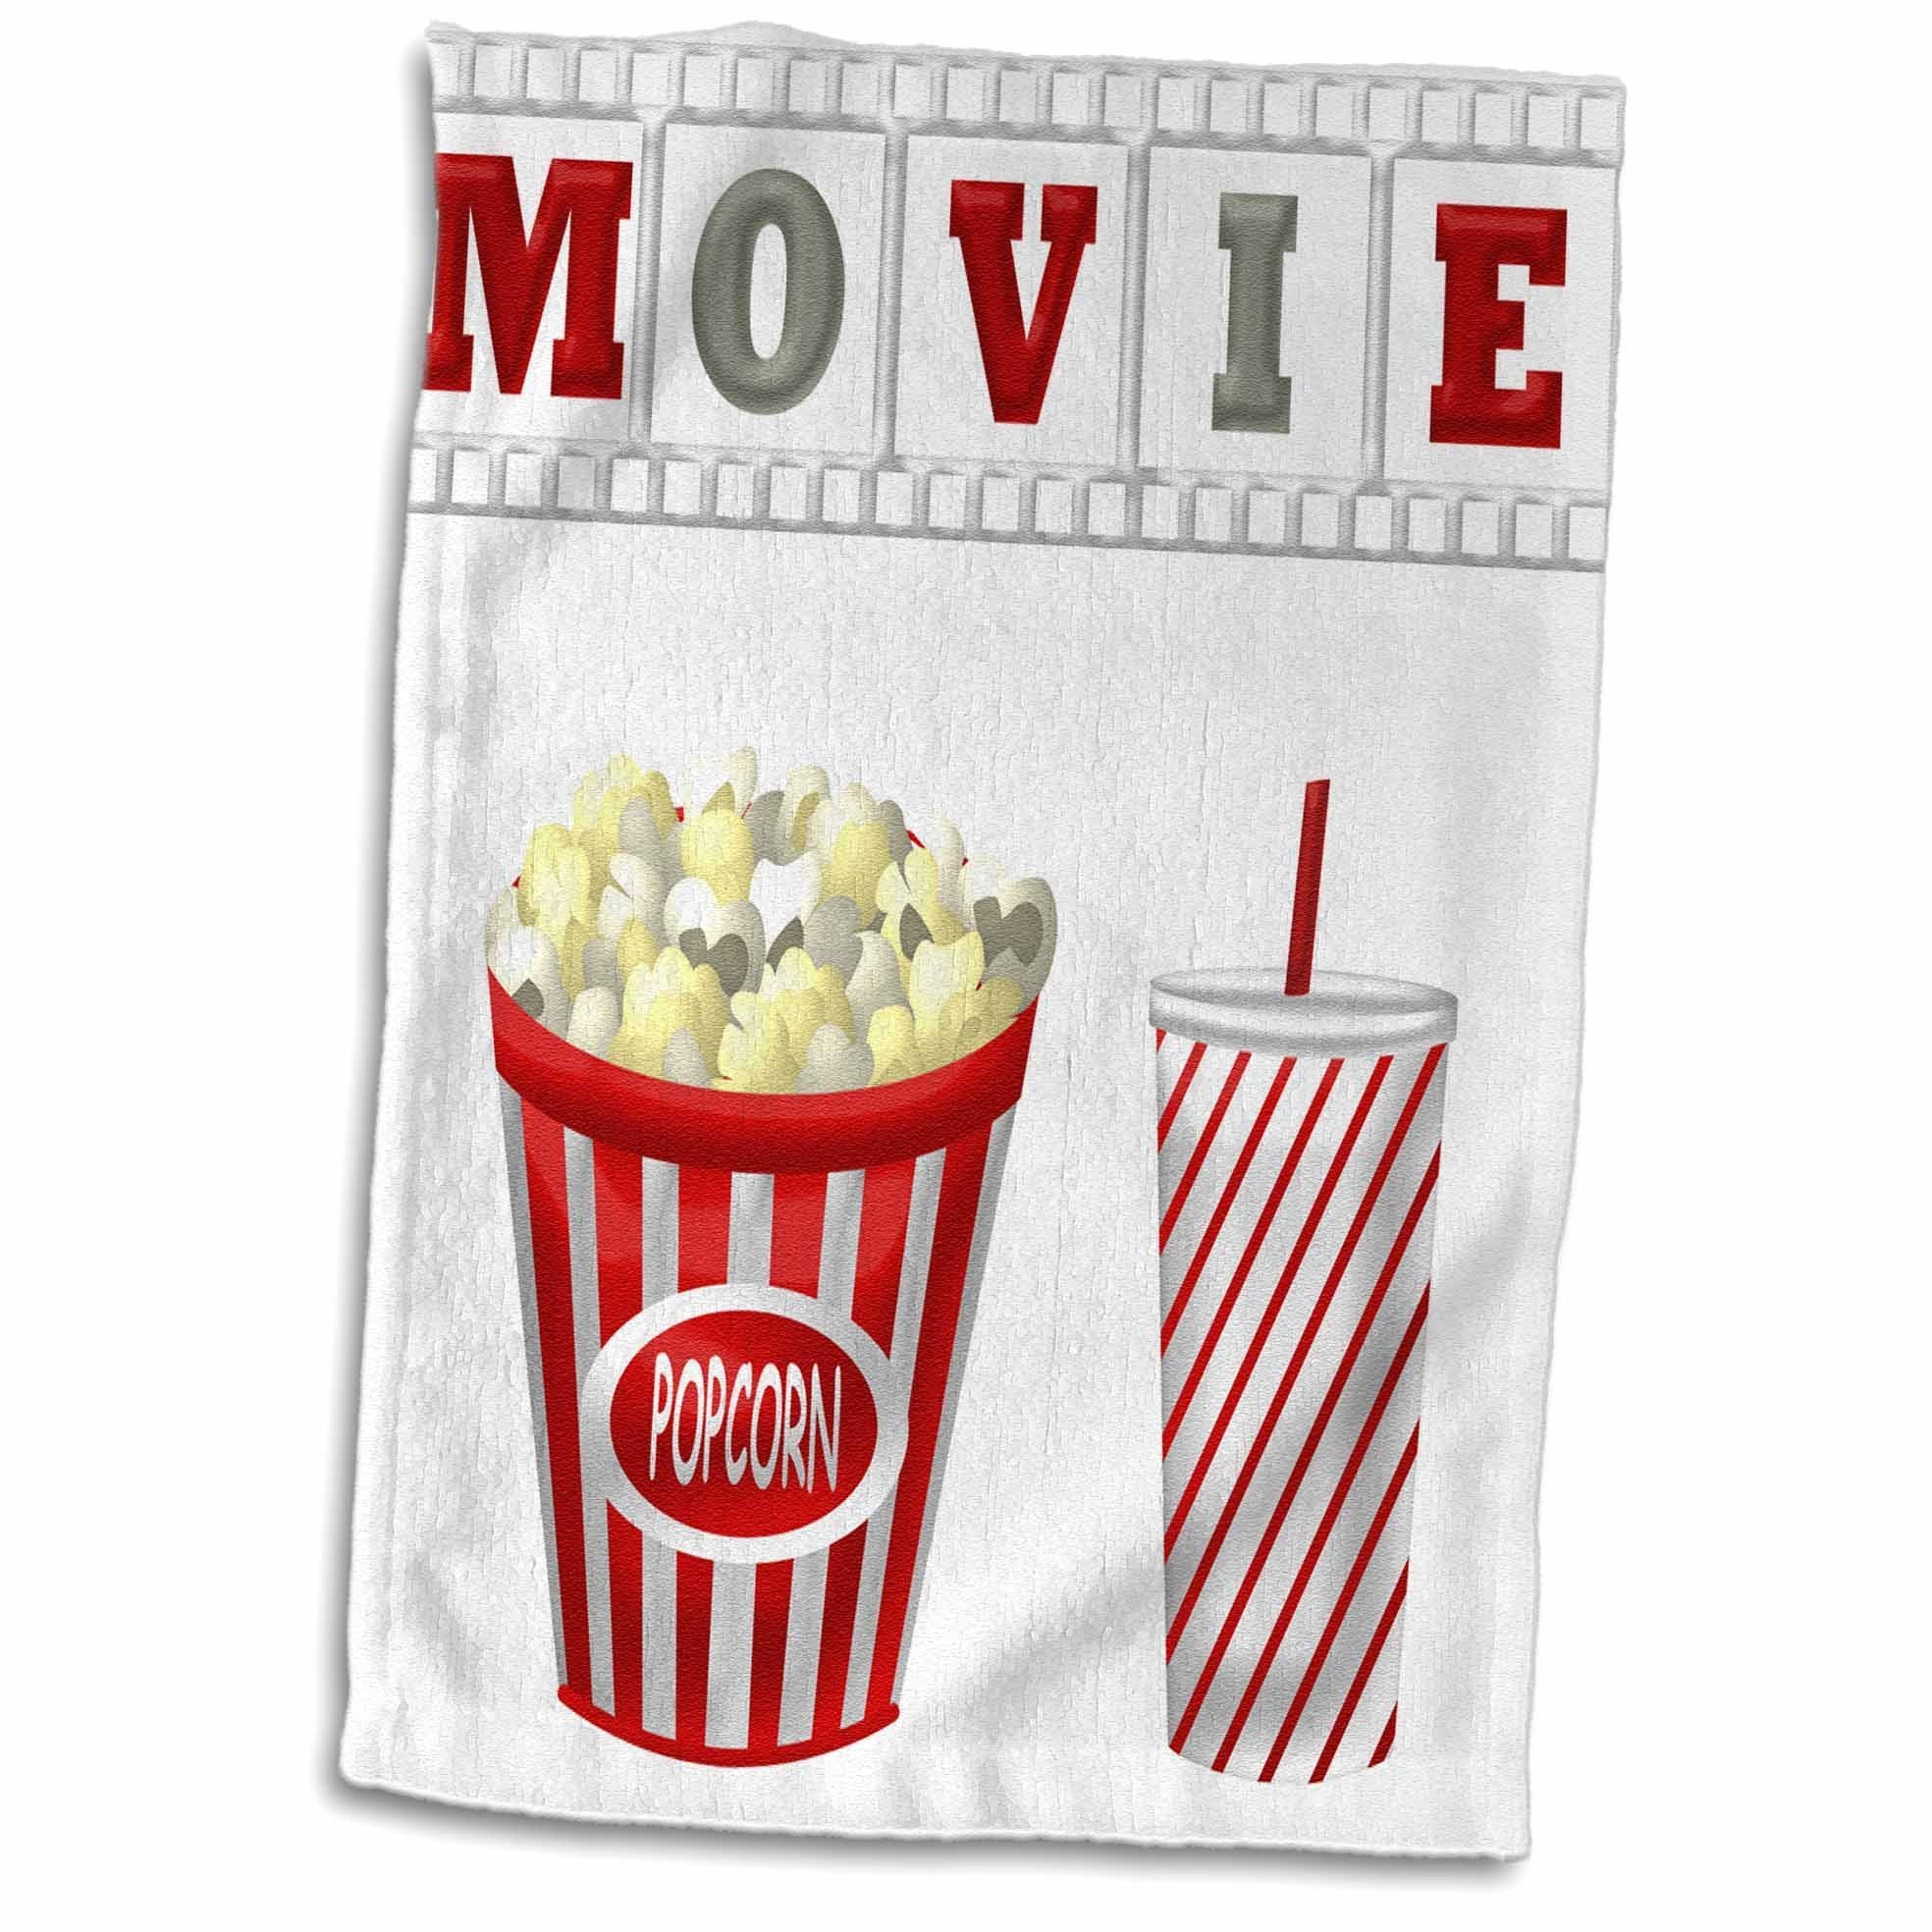 3D Rose The Word Movie with Popcorn and Soda Illustration in Hand Towel, 15'' x 22'', Red/White/Gray